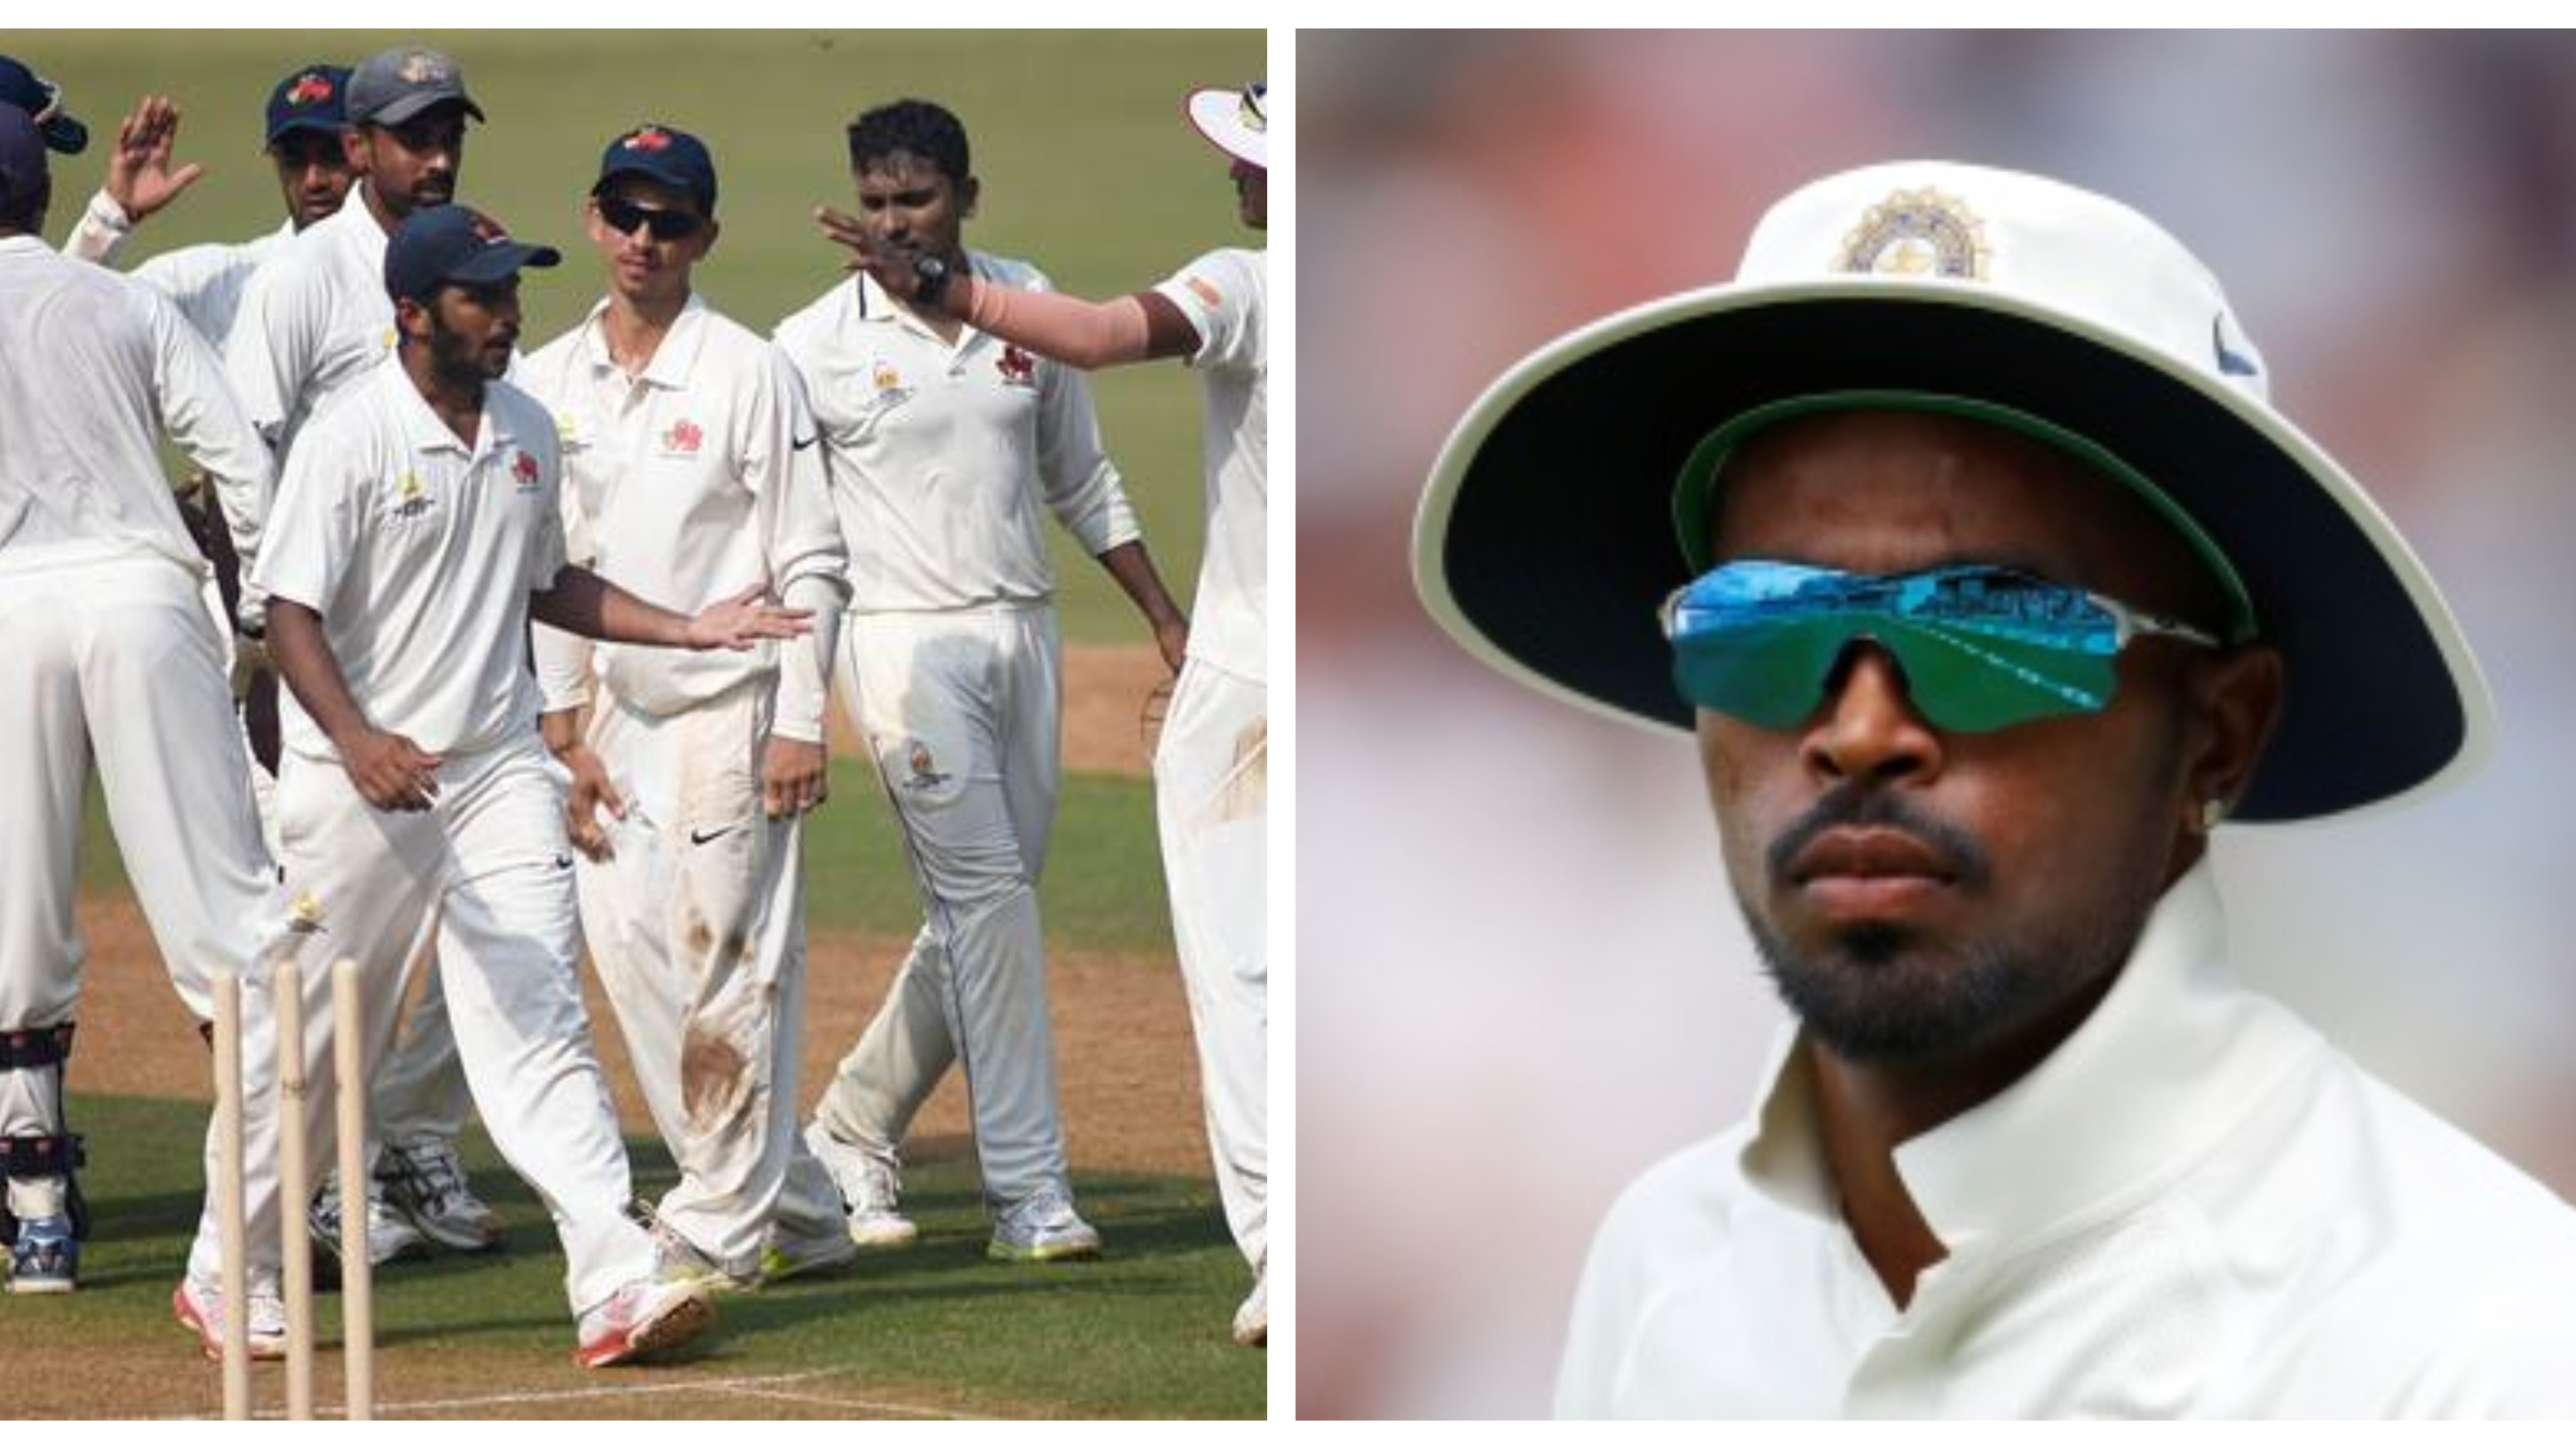 Ranji Trophy 2018-19: Mumbai on top despite Hardik Pandya's brilliance